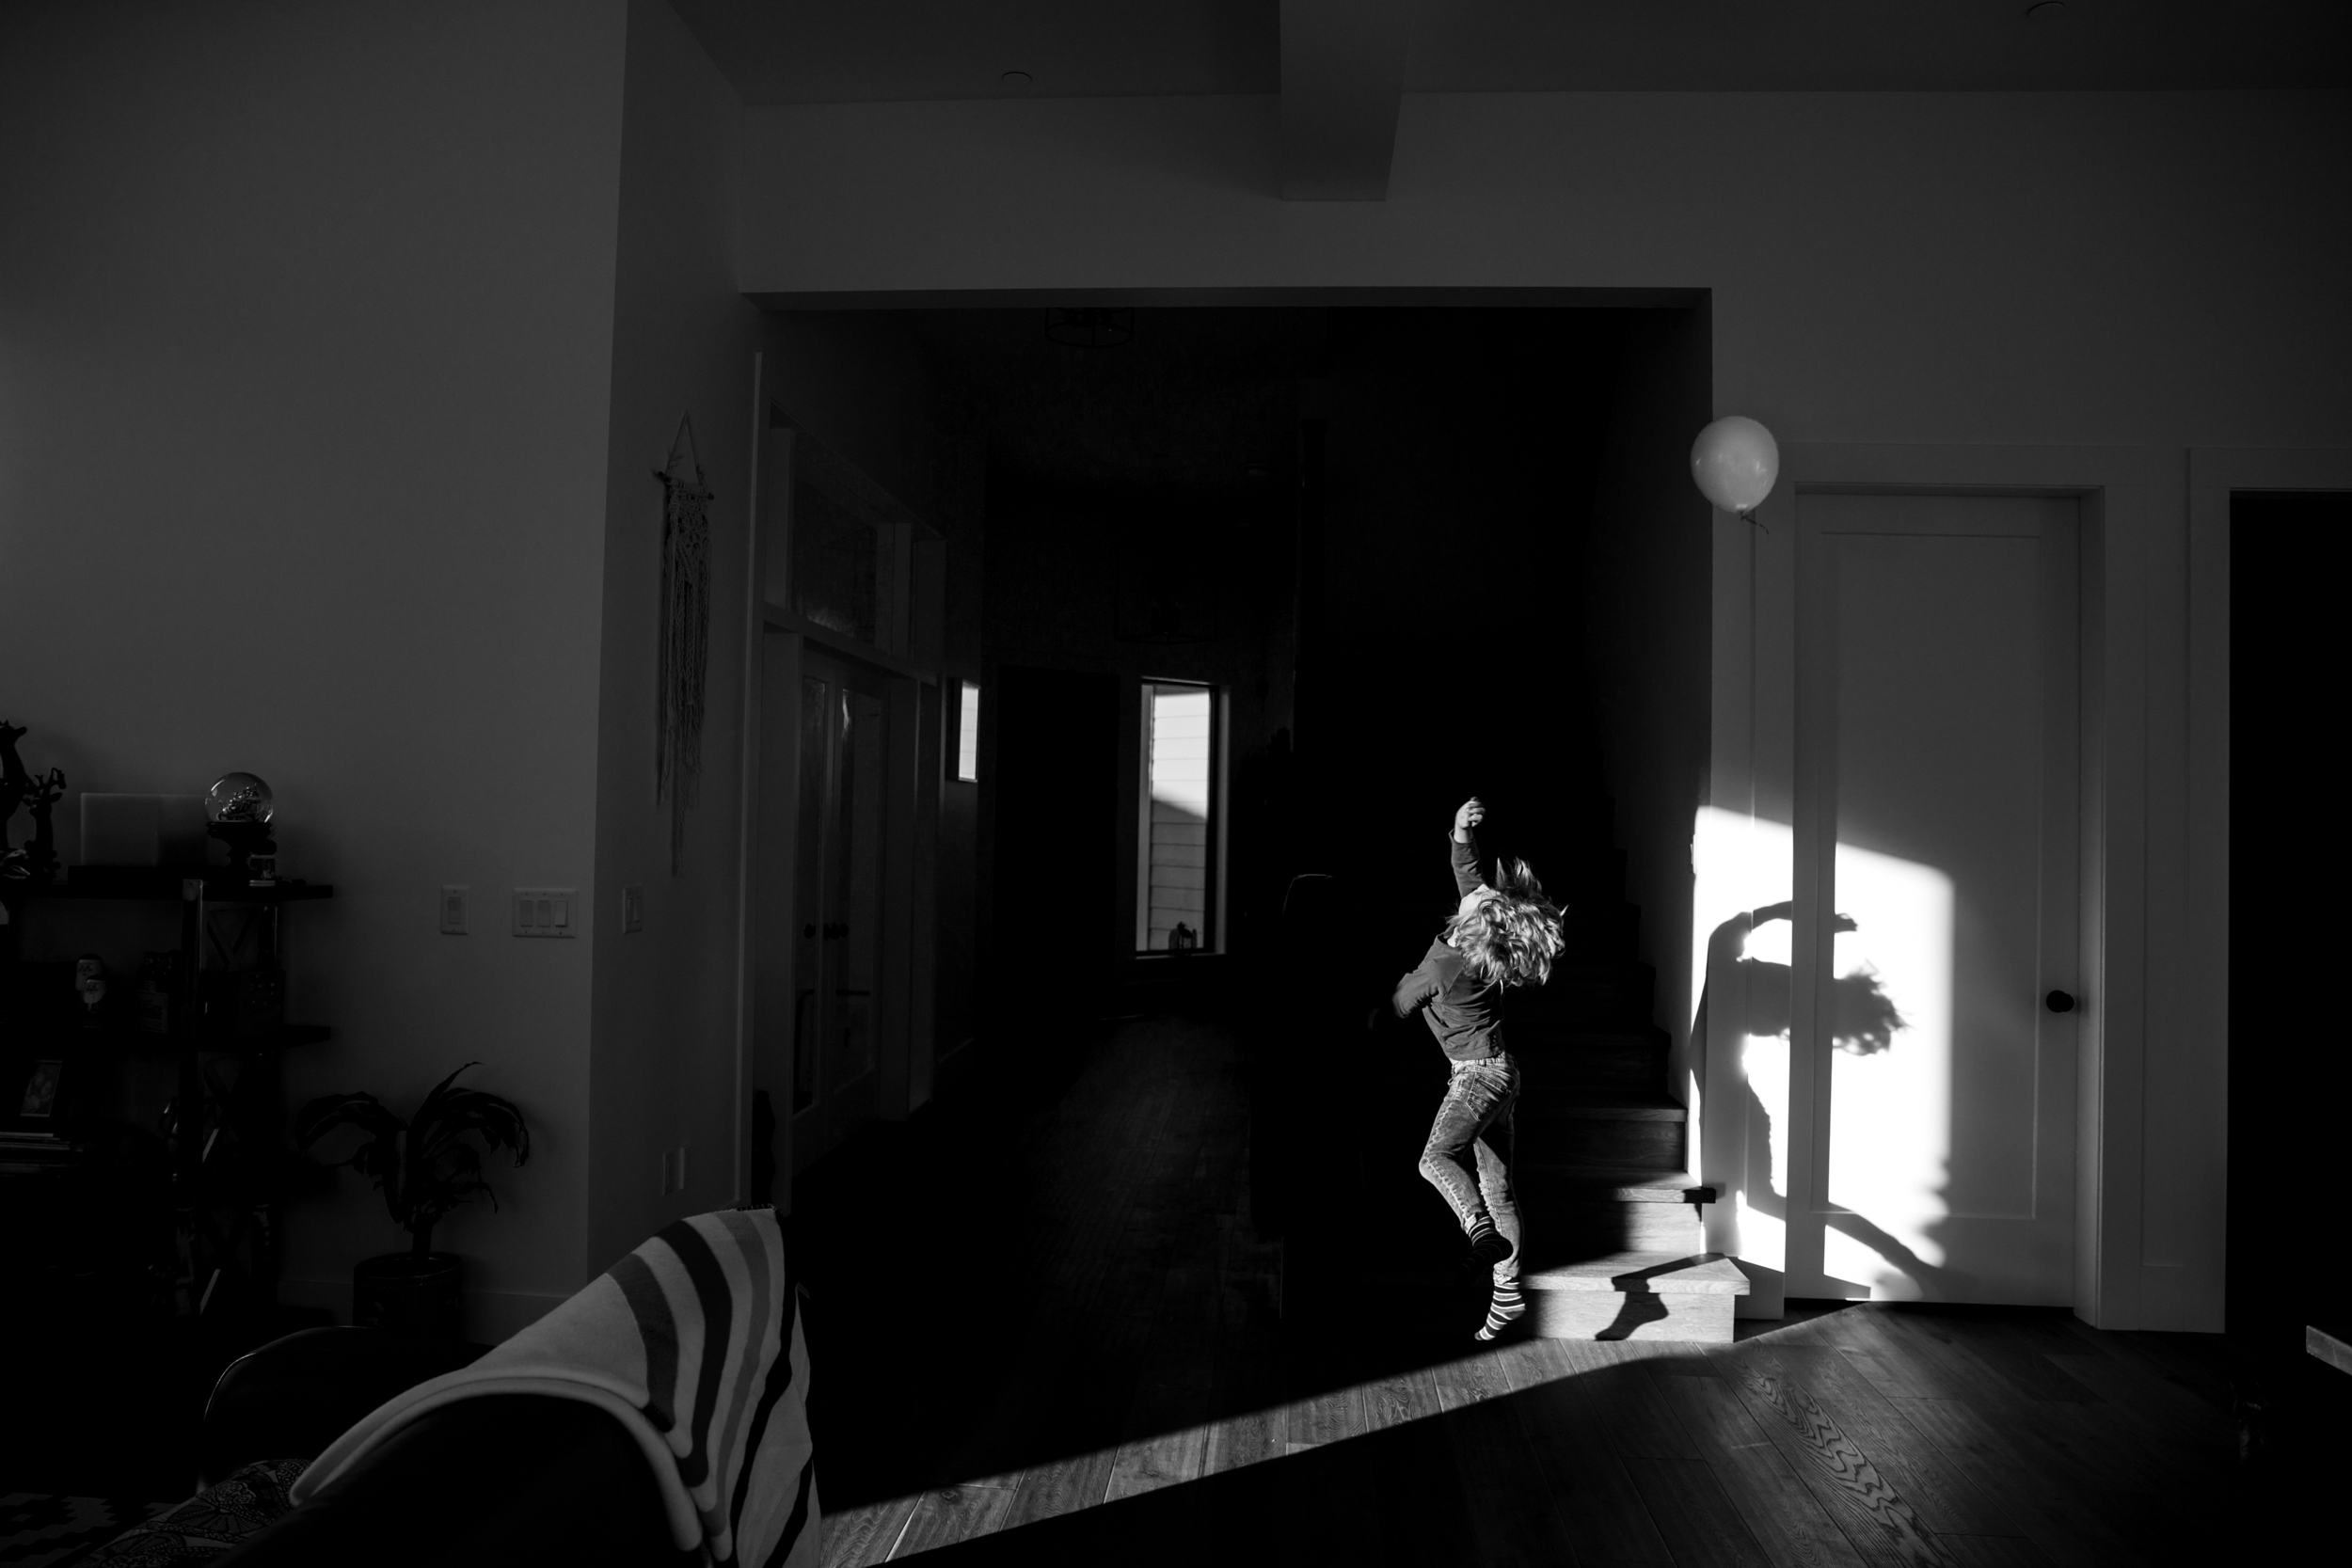 kid jumping to hit balloon in the shadows